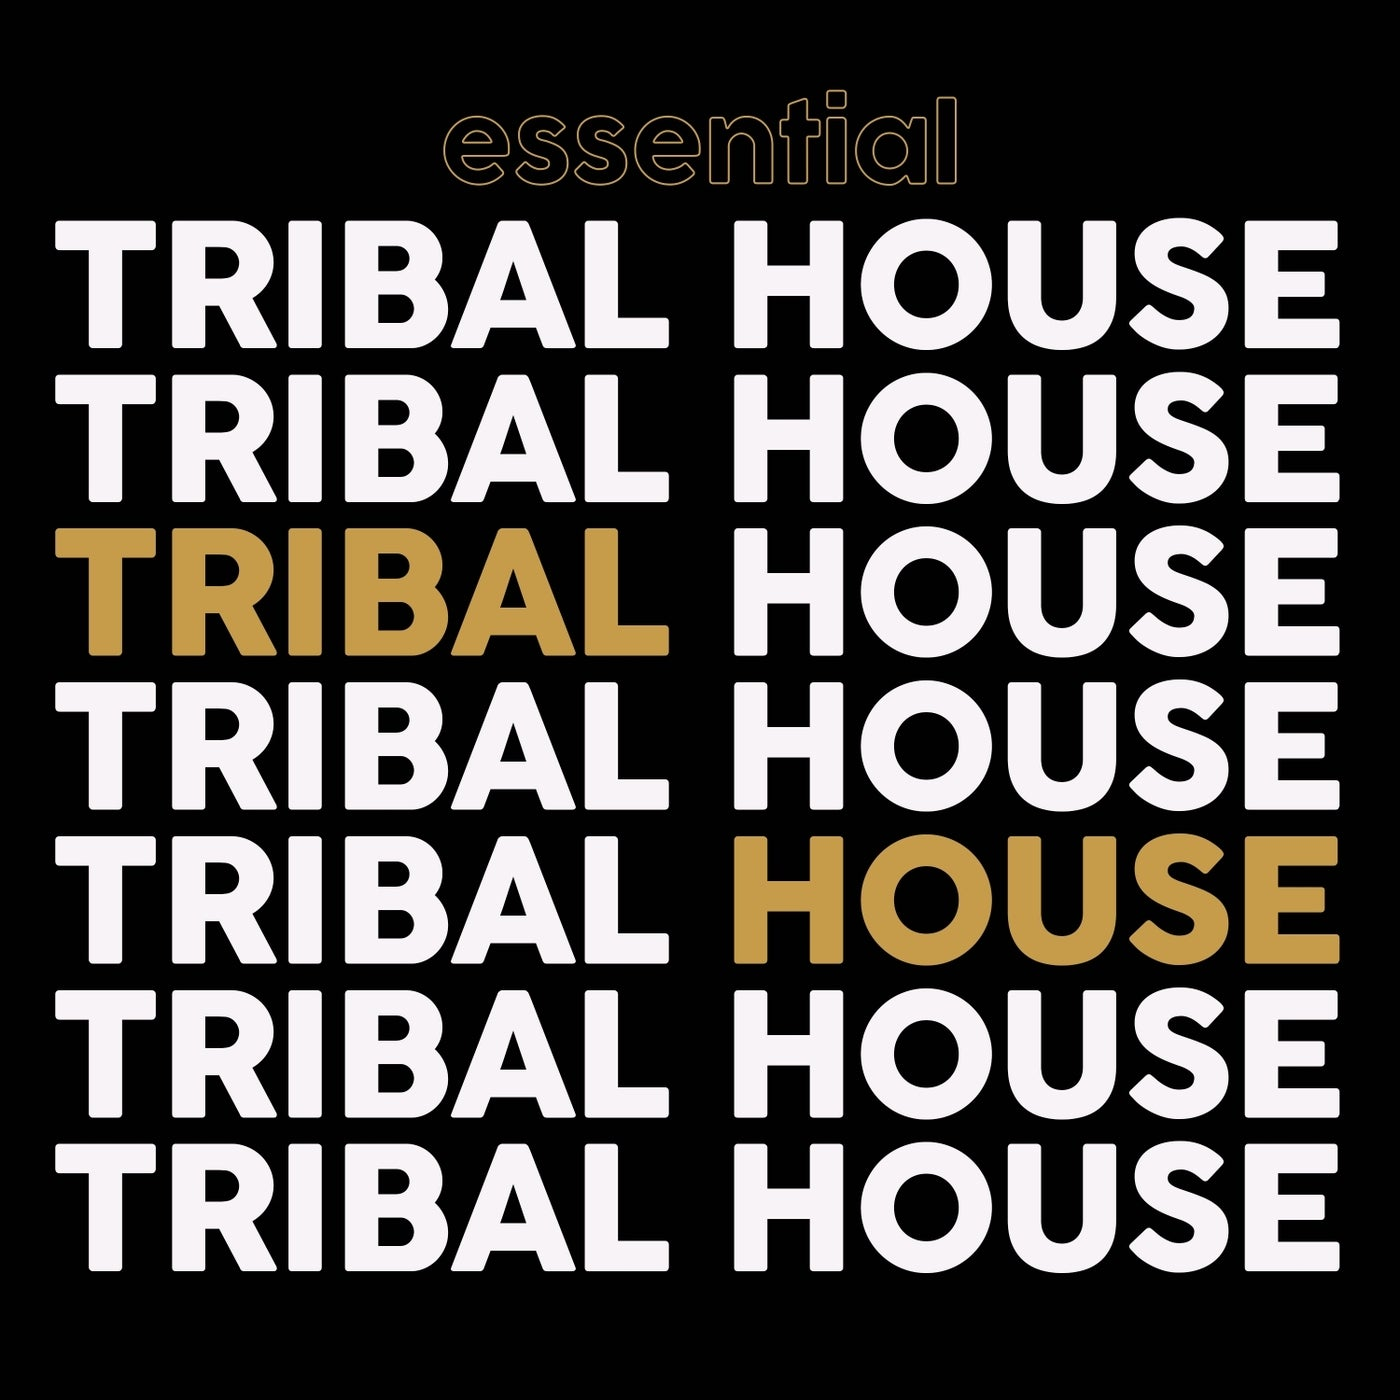 Essential Tribal House